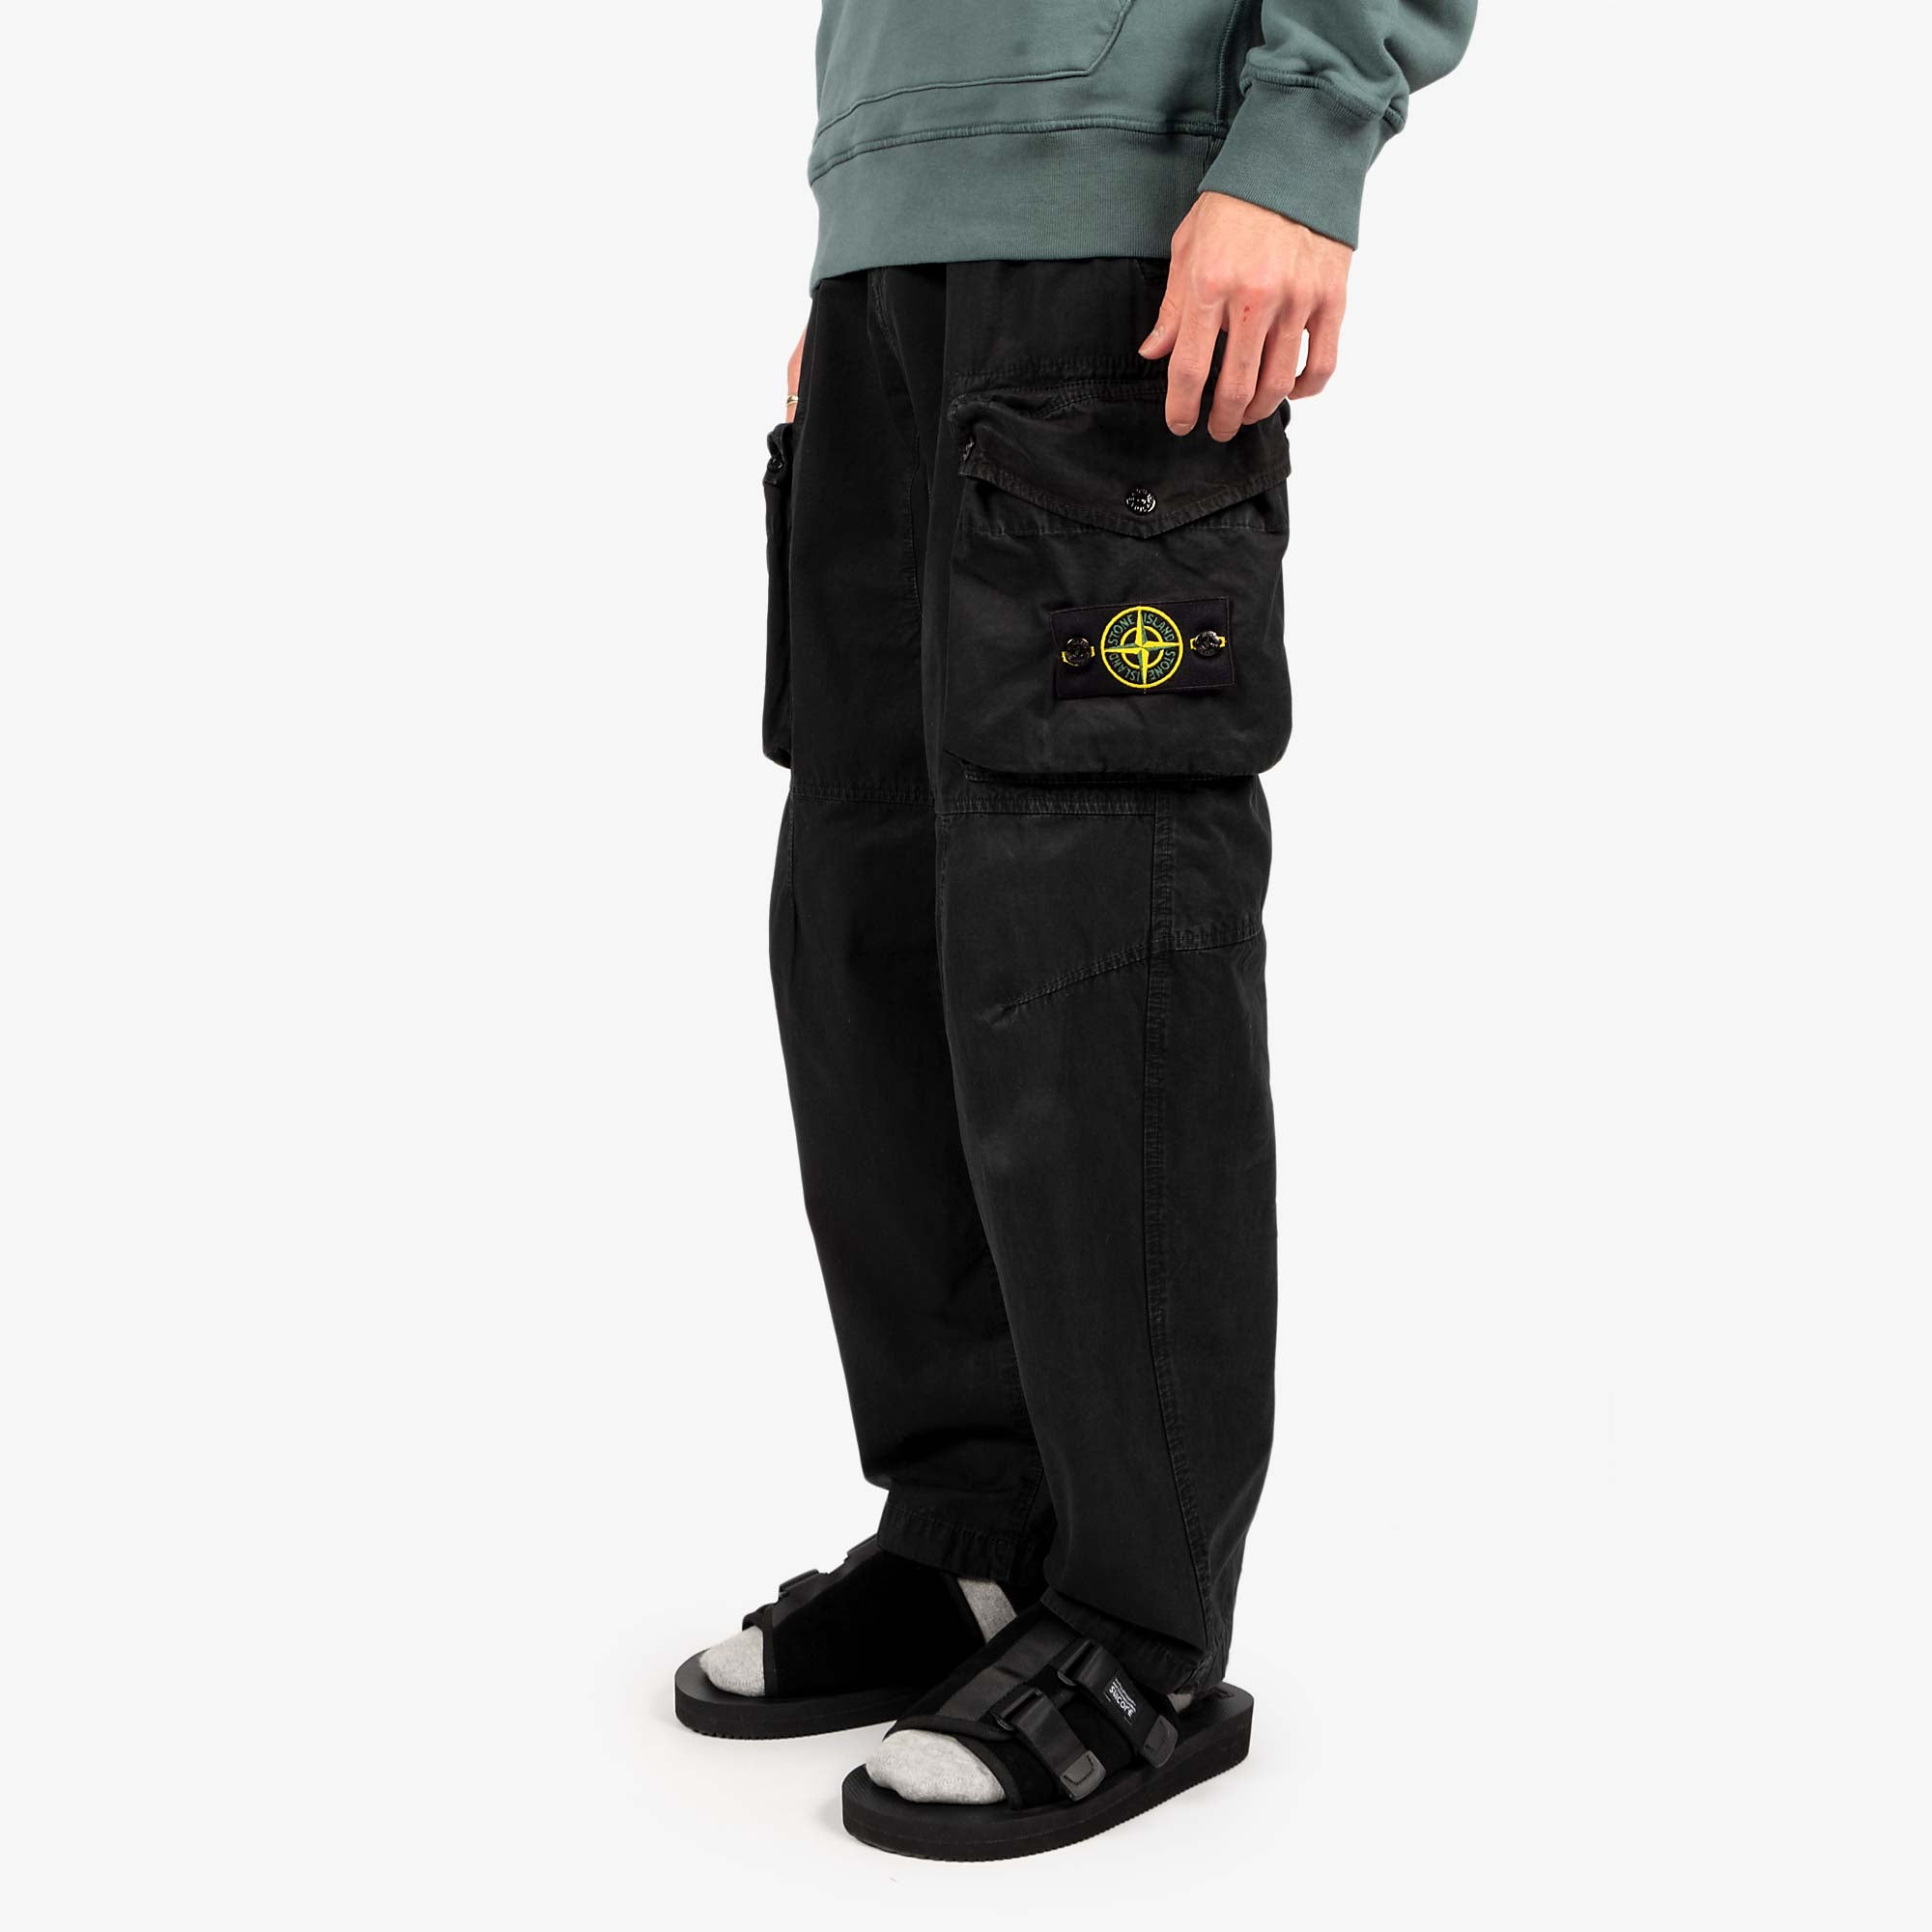 Stone Island T.CO Old Effect Cargo Pant 7415319WA - Black 2